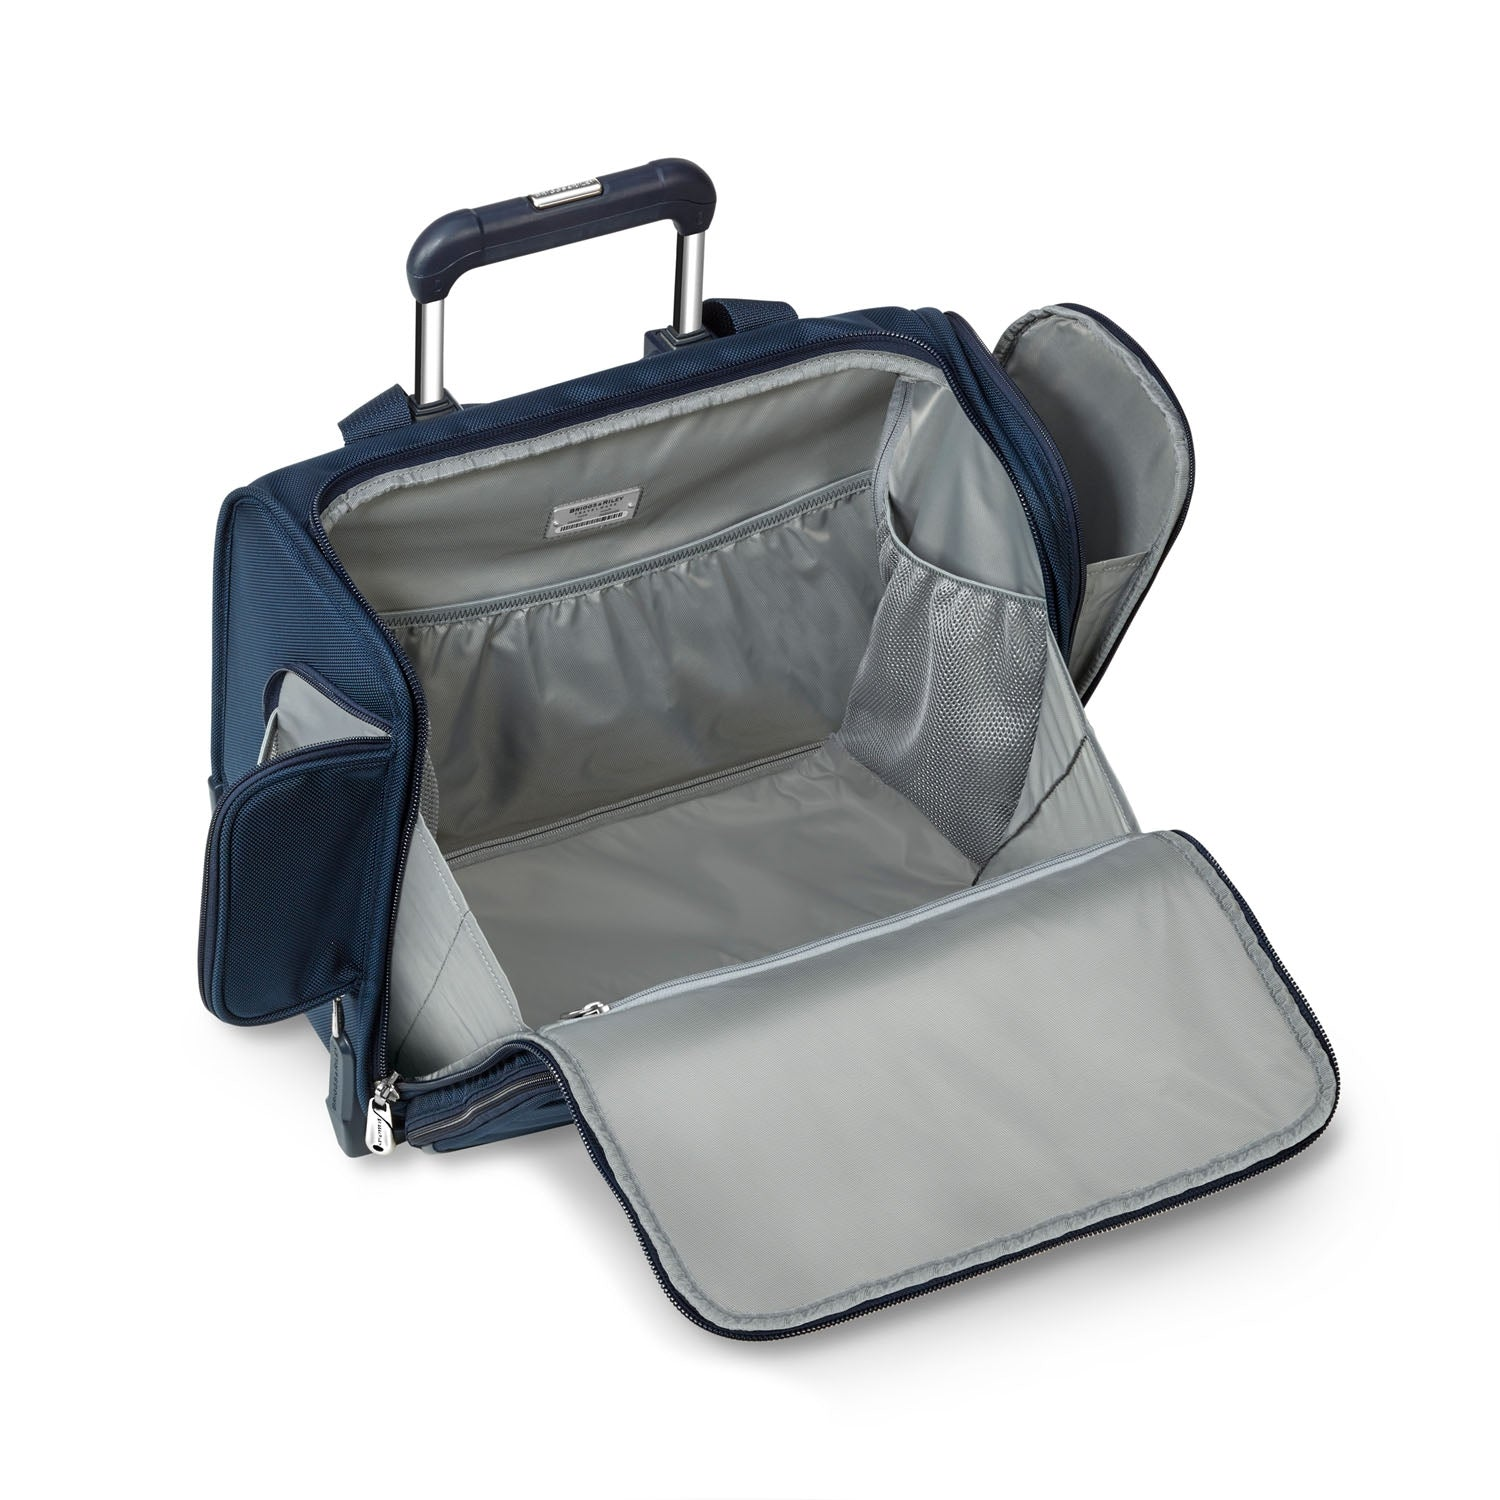 sold worldwide skate shoes competitive price Rolling Cabin Bag (Two-Wheel)